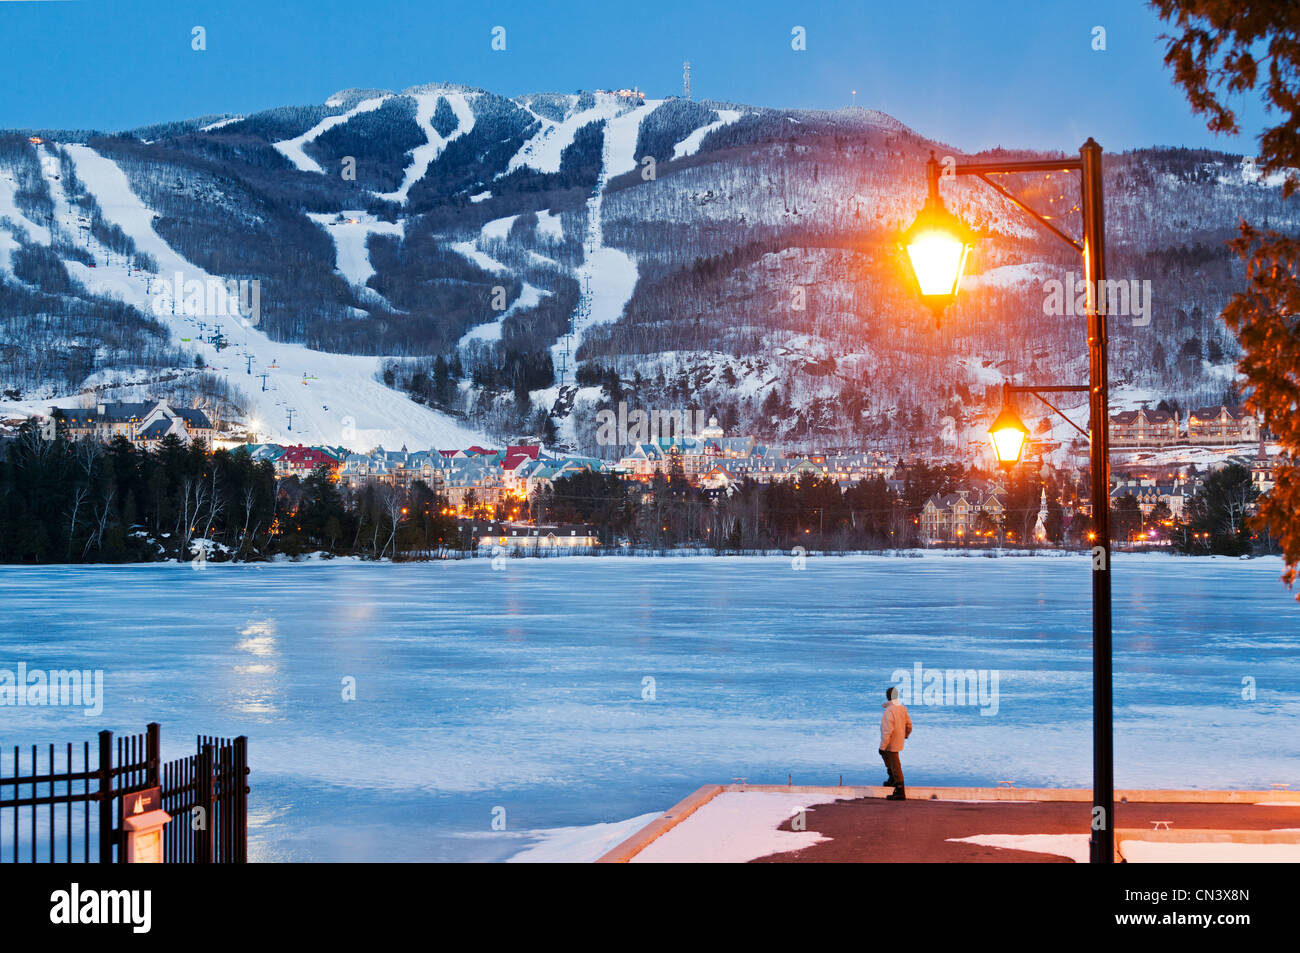 Canada, Quebec province, Laurentians region, Mont Tremblant, ski resort and ski slopes lit at night seen from the - Stock Image